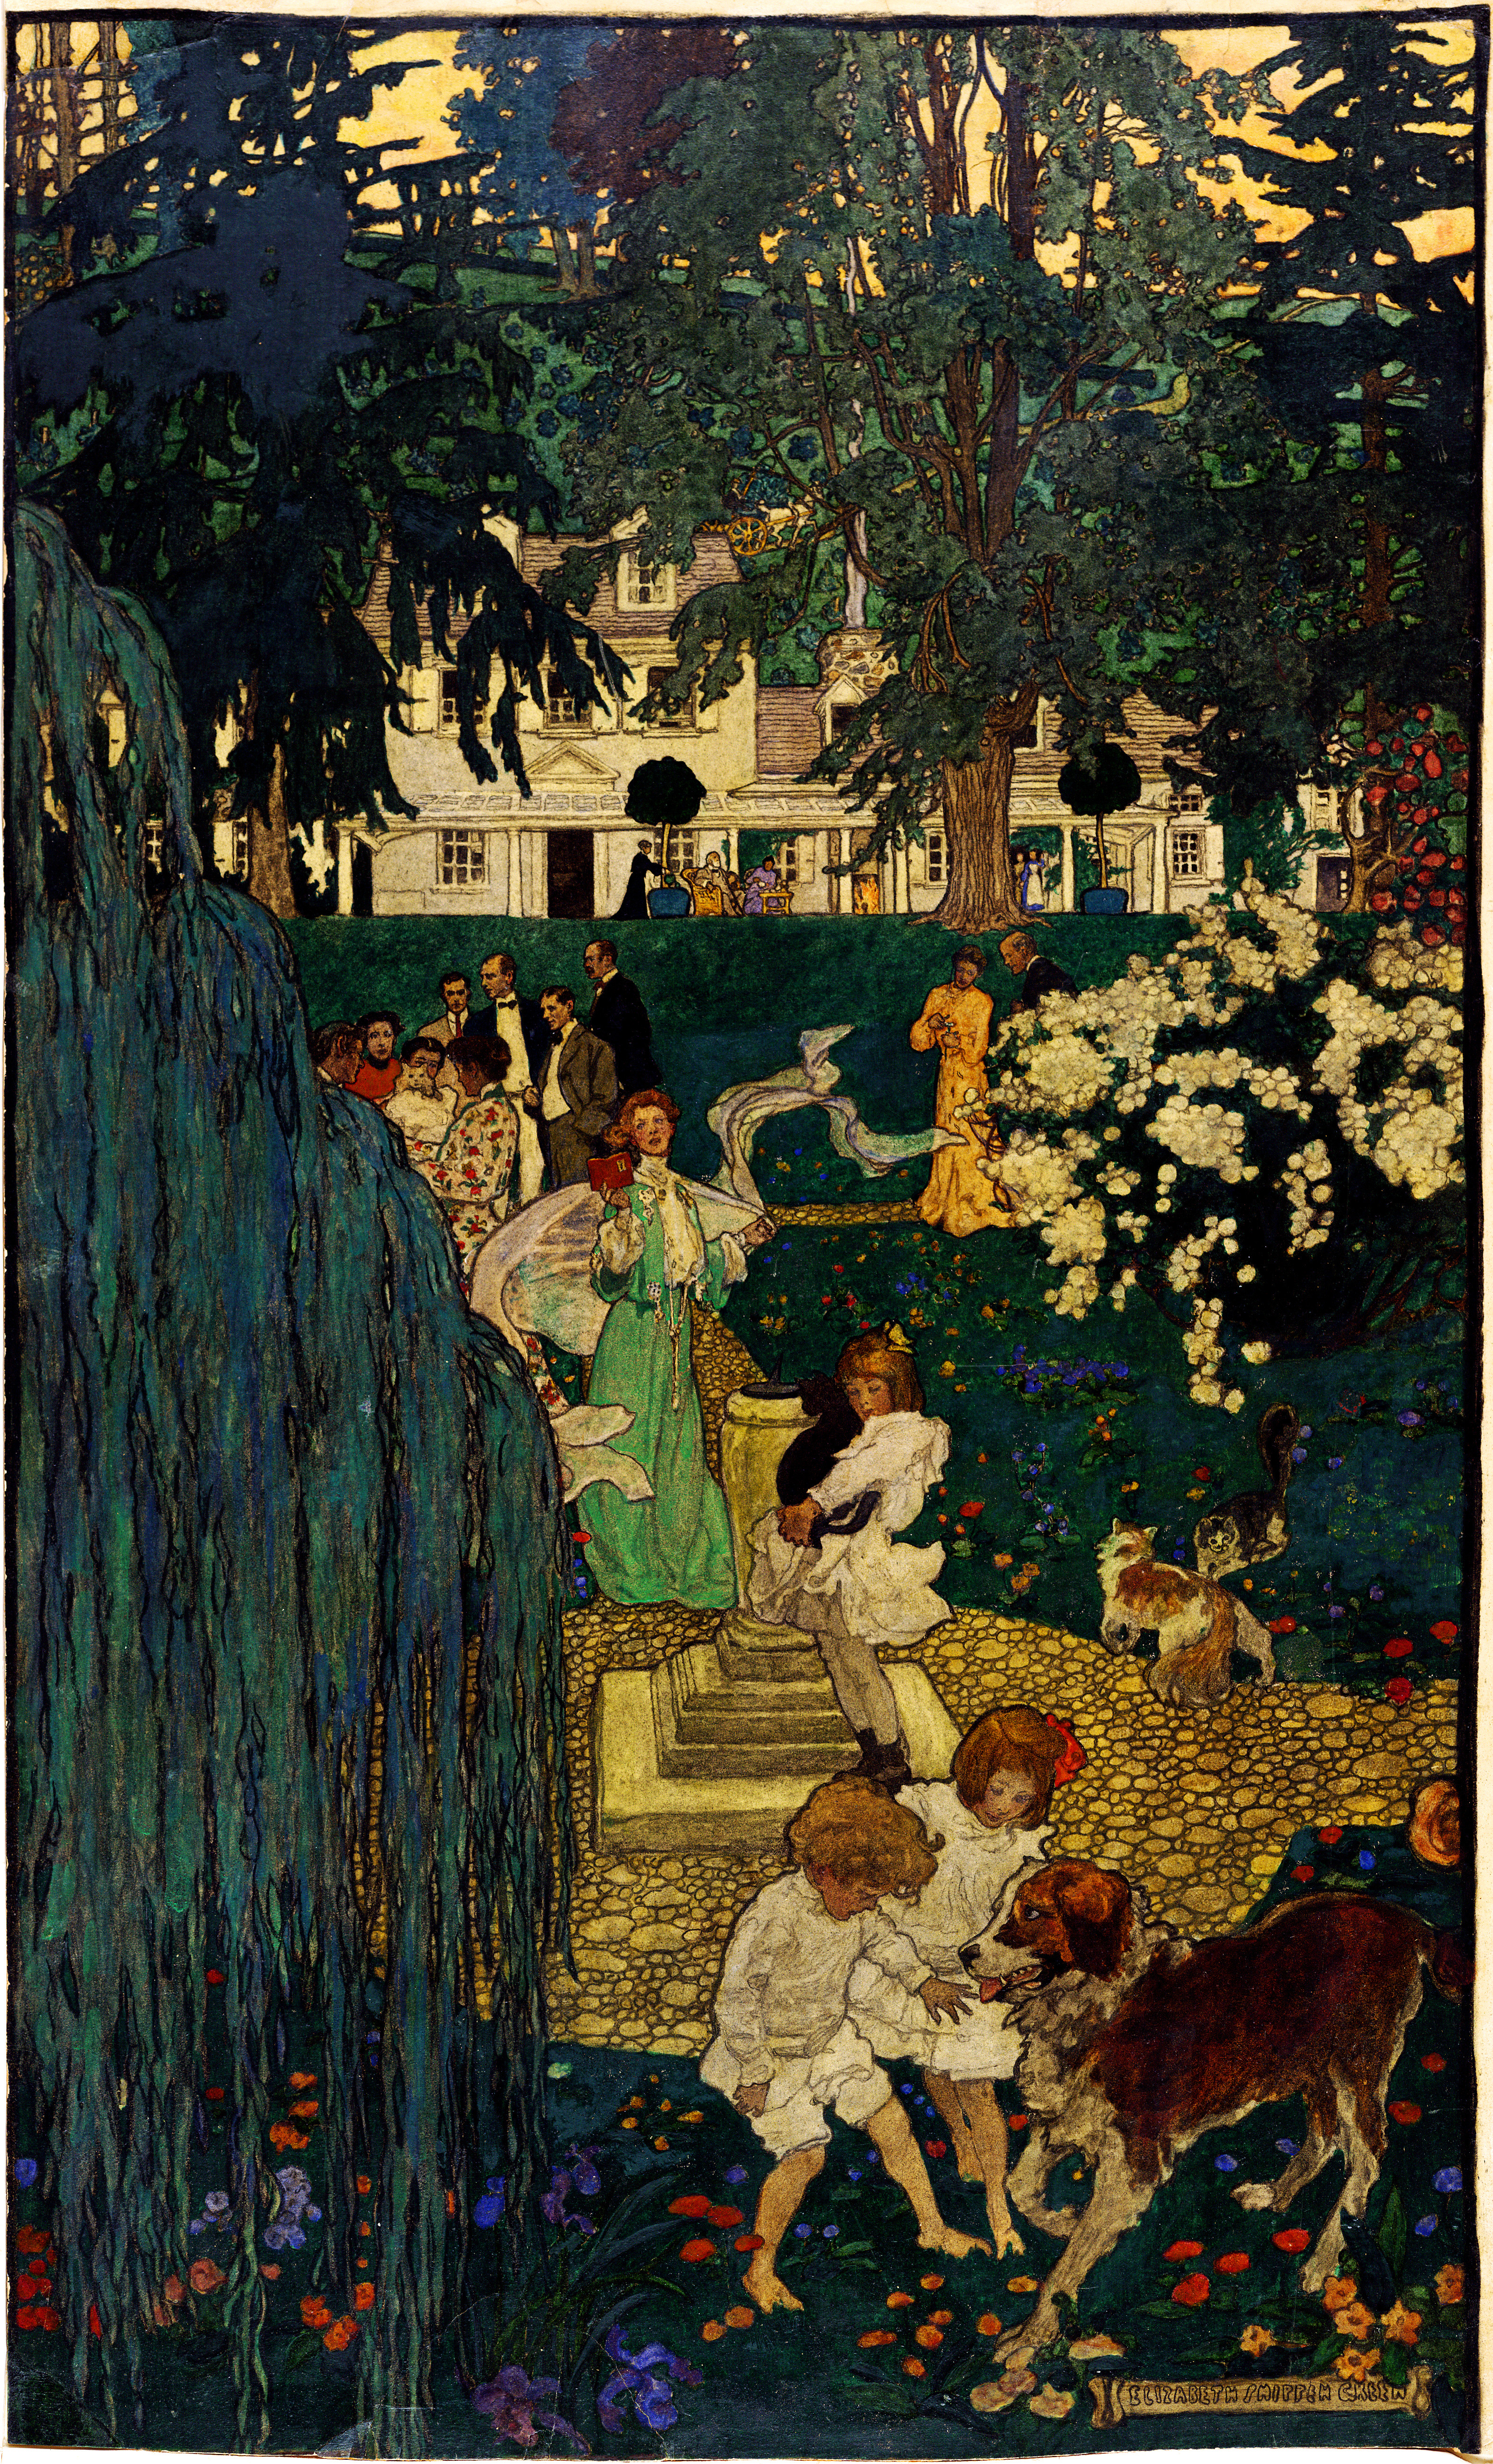 Elizabeth_Shippen_Green%2C_Life_was_made_for_love_and_cheer%2C_1904.jpg